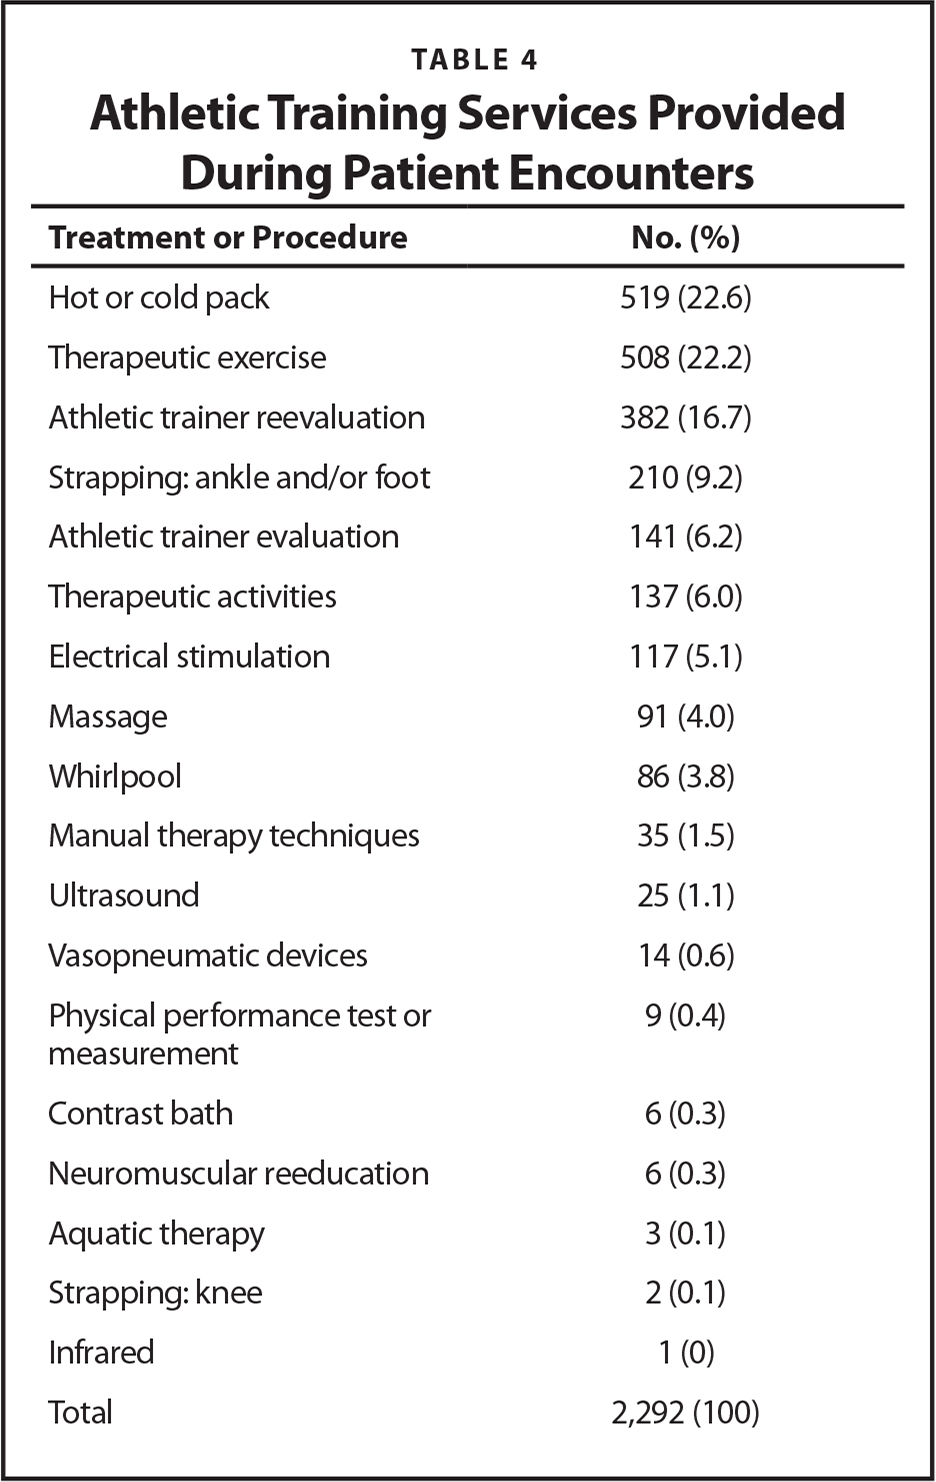 Athletic Training Services Provided During Patient Encounters